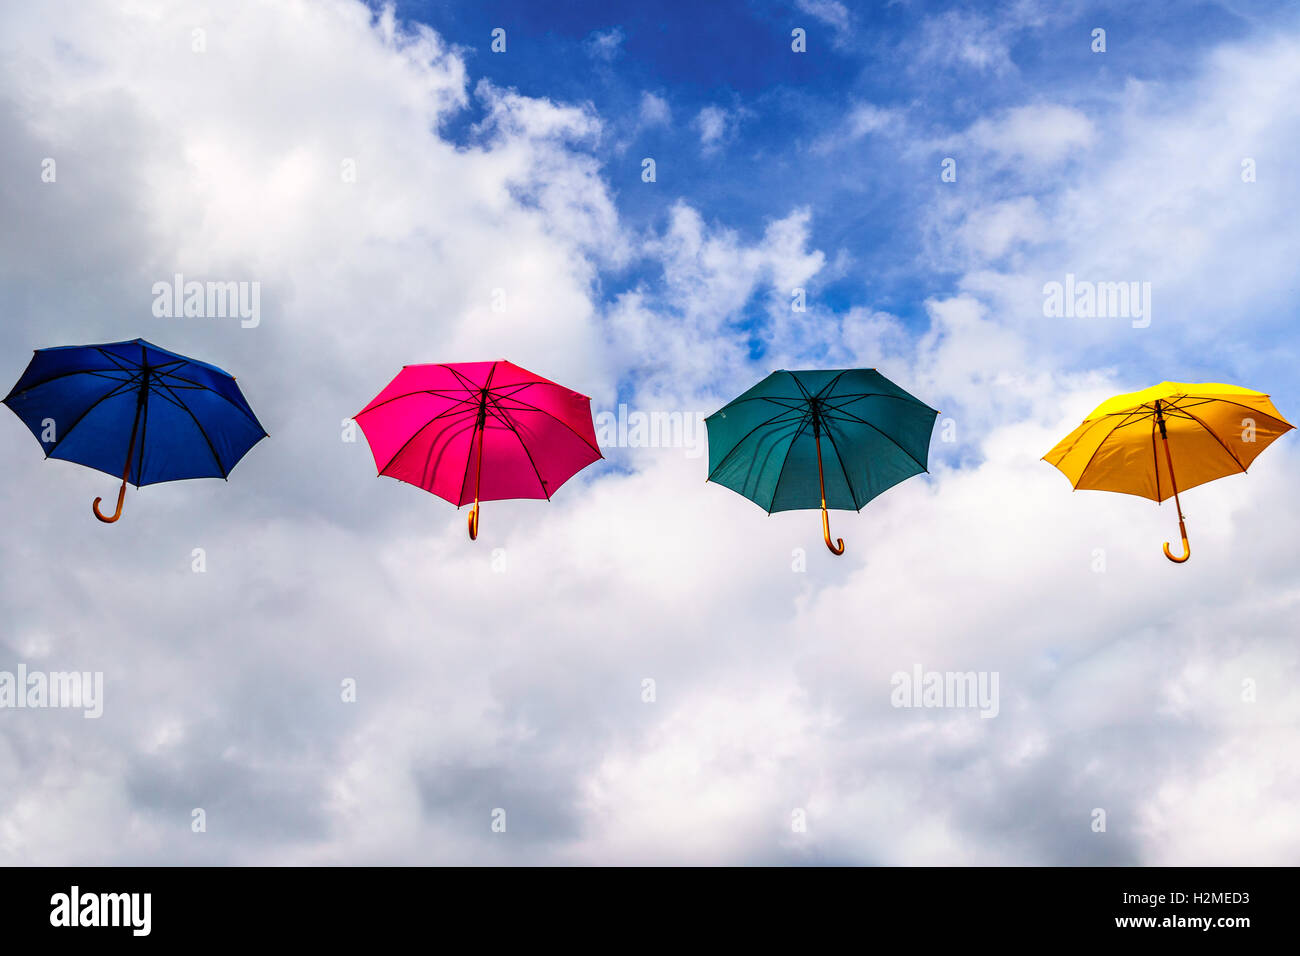 Blue Umbrella, Pink Umbrella, Green Umbrella, Yellow Umbrella floating in the Air under Partly Blue Sky and Clouds - Stock Image